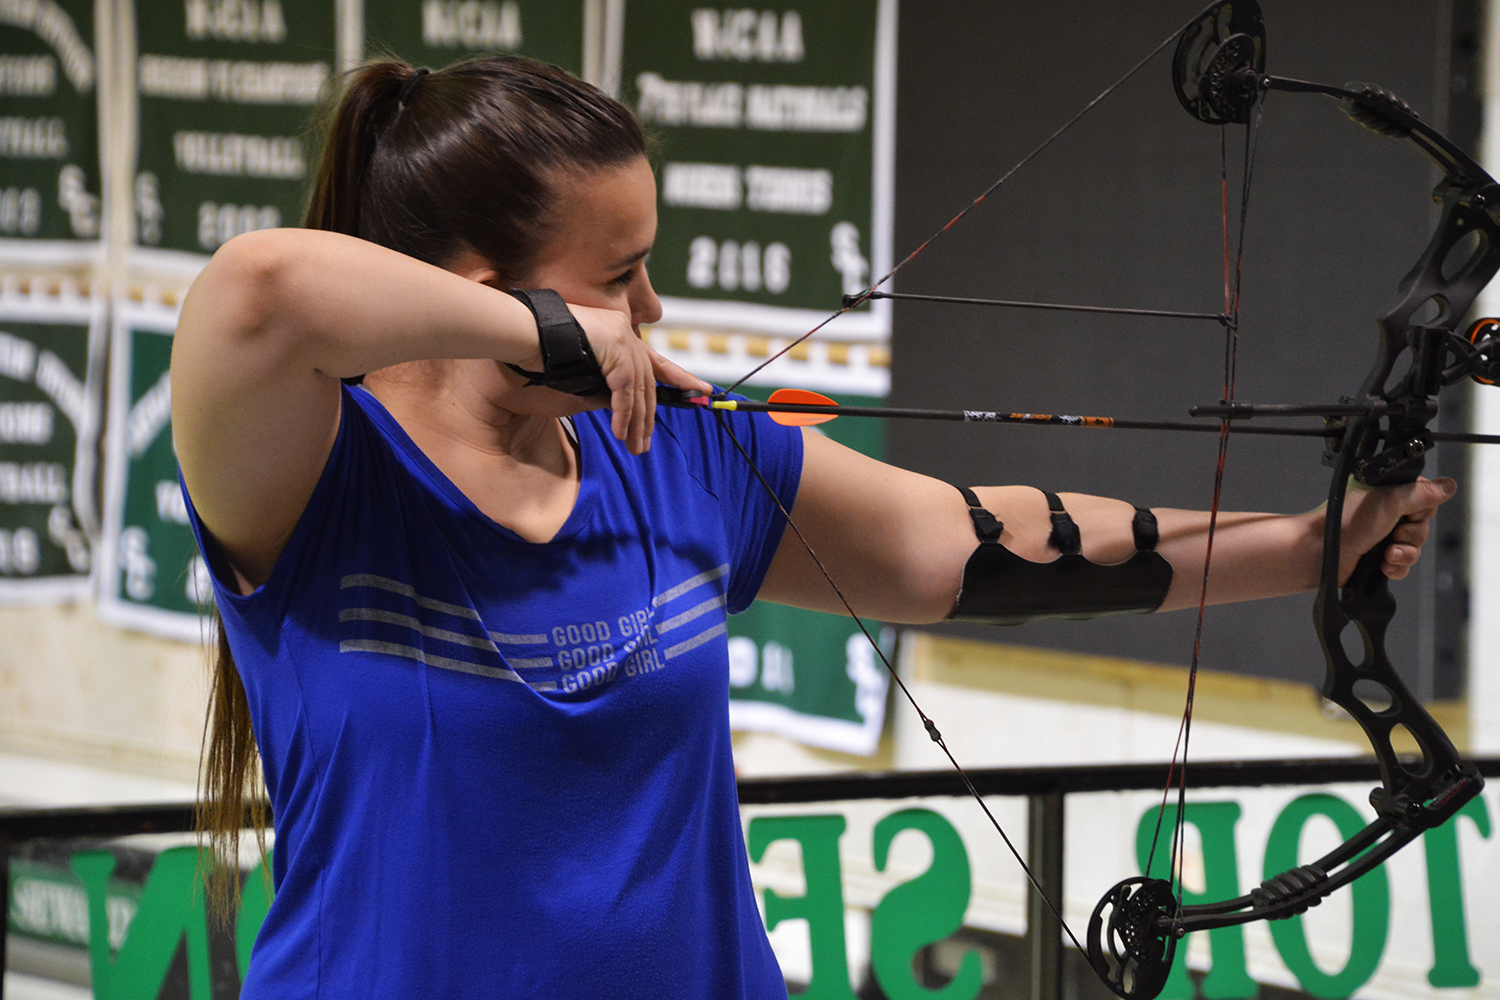 Archery is one of the various